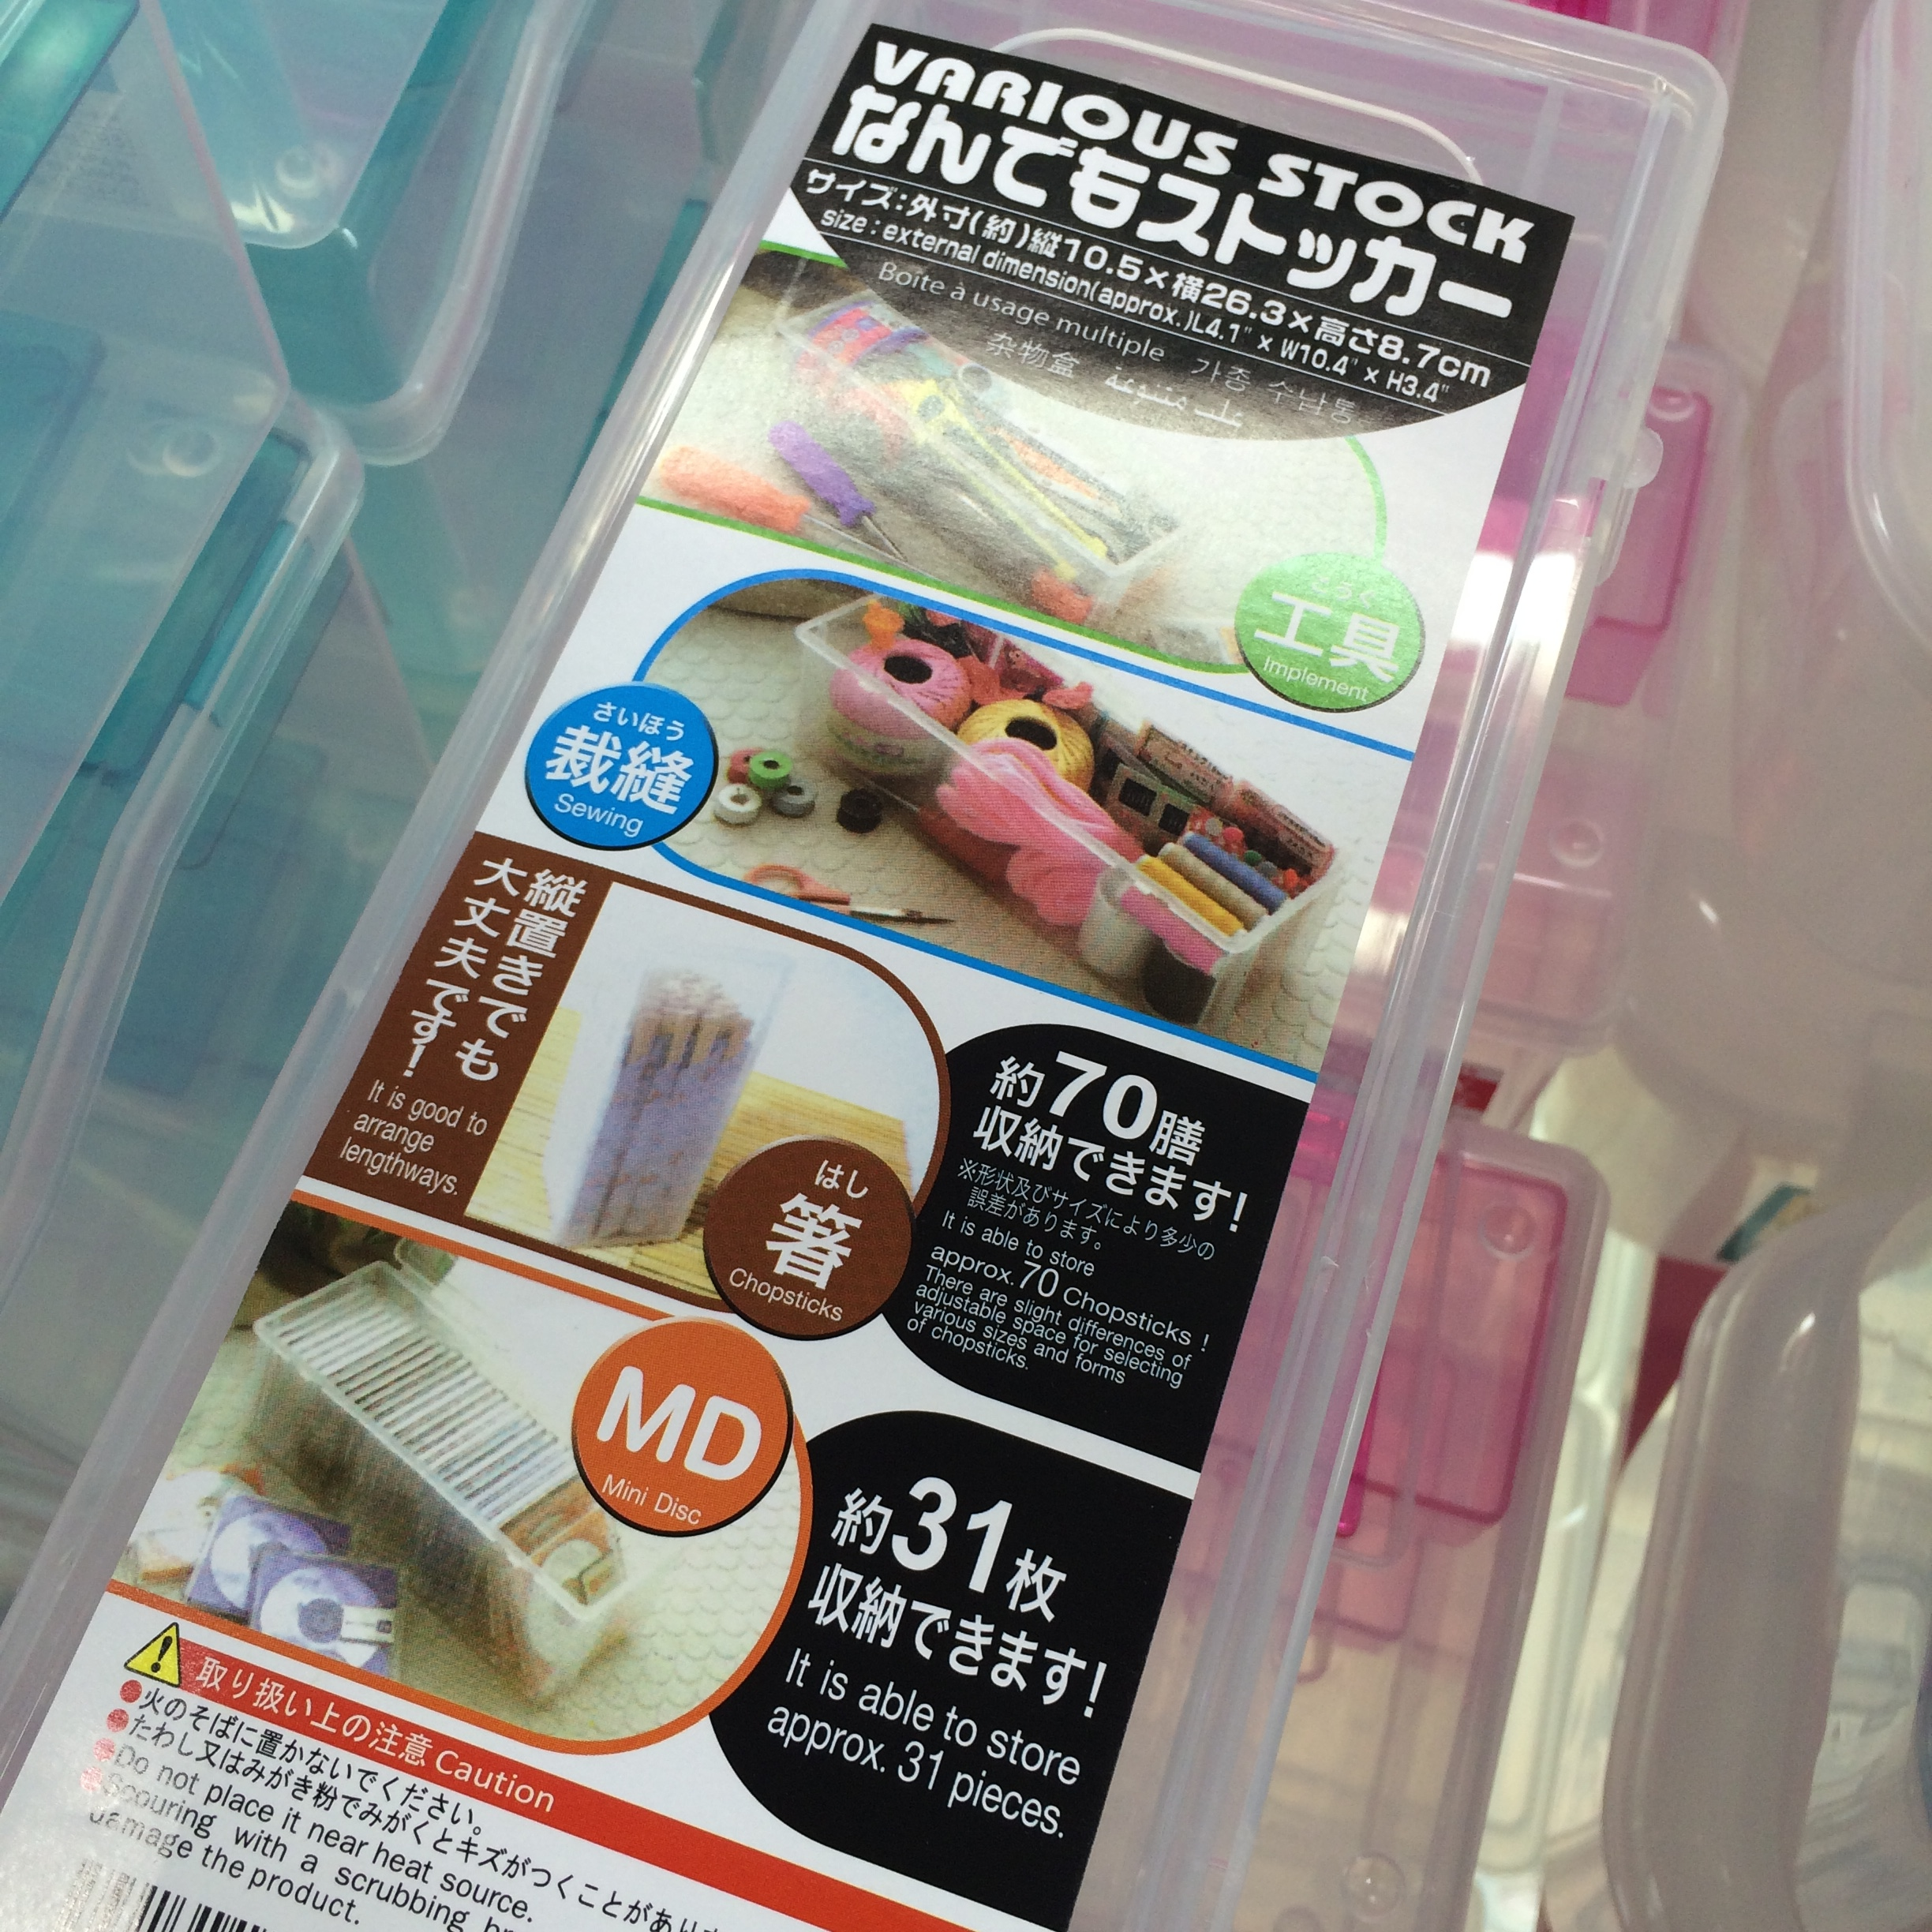 Confessions Of A Daiso Shopaholic